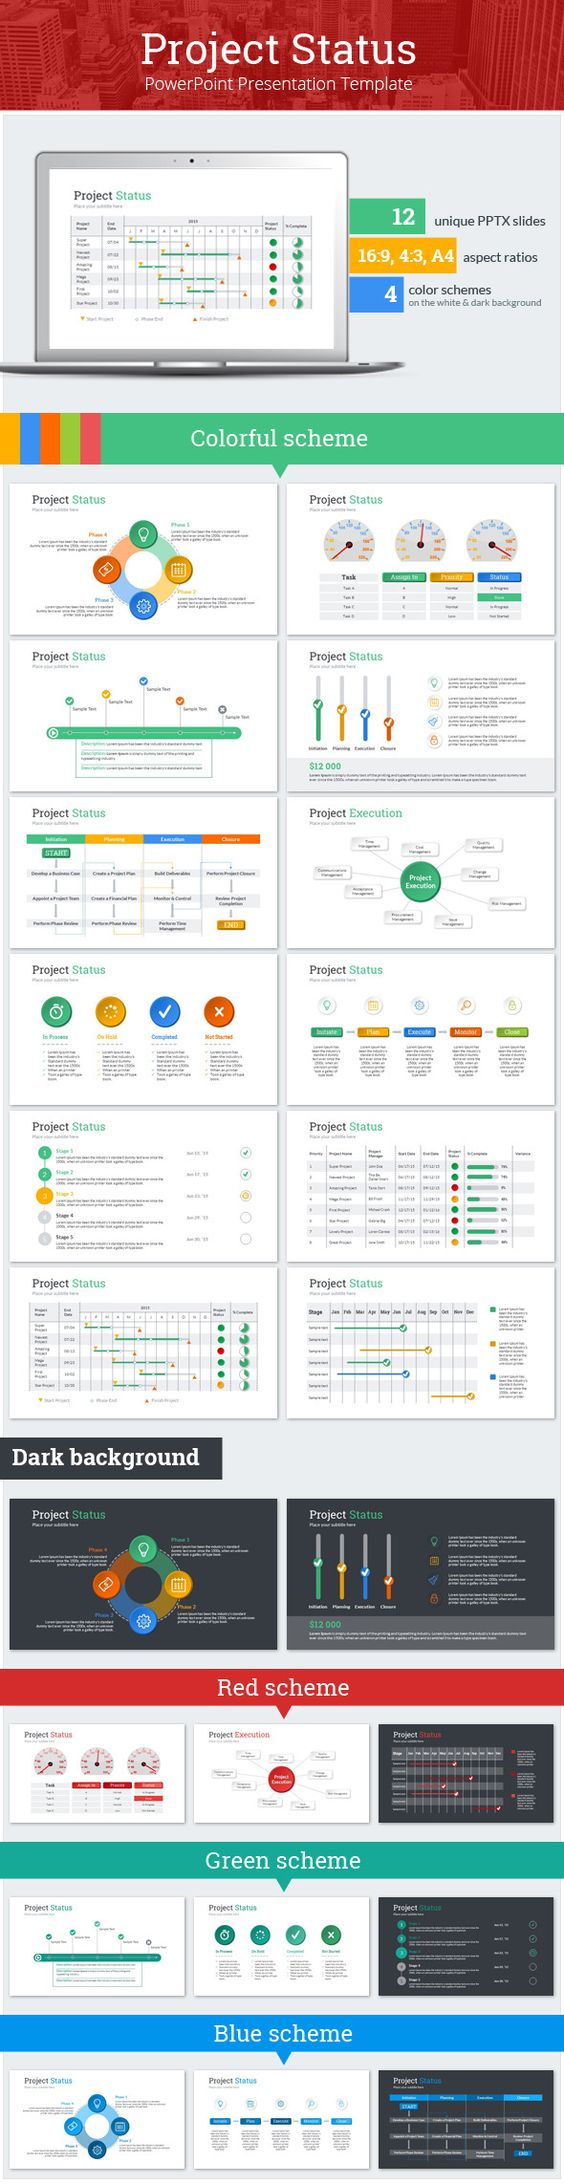 Project Status Dashboard And Colorful Template For Monitor And